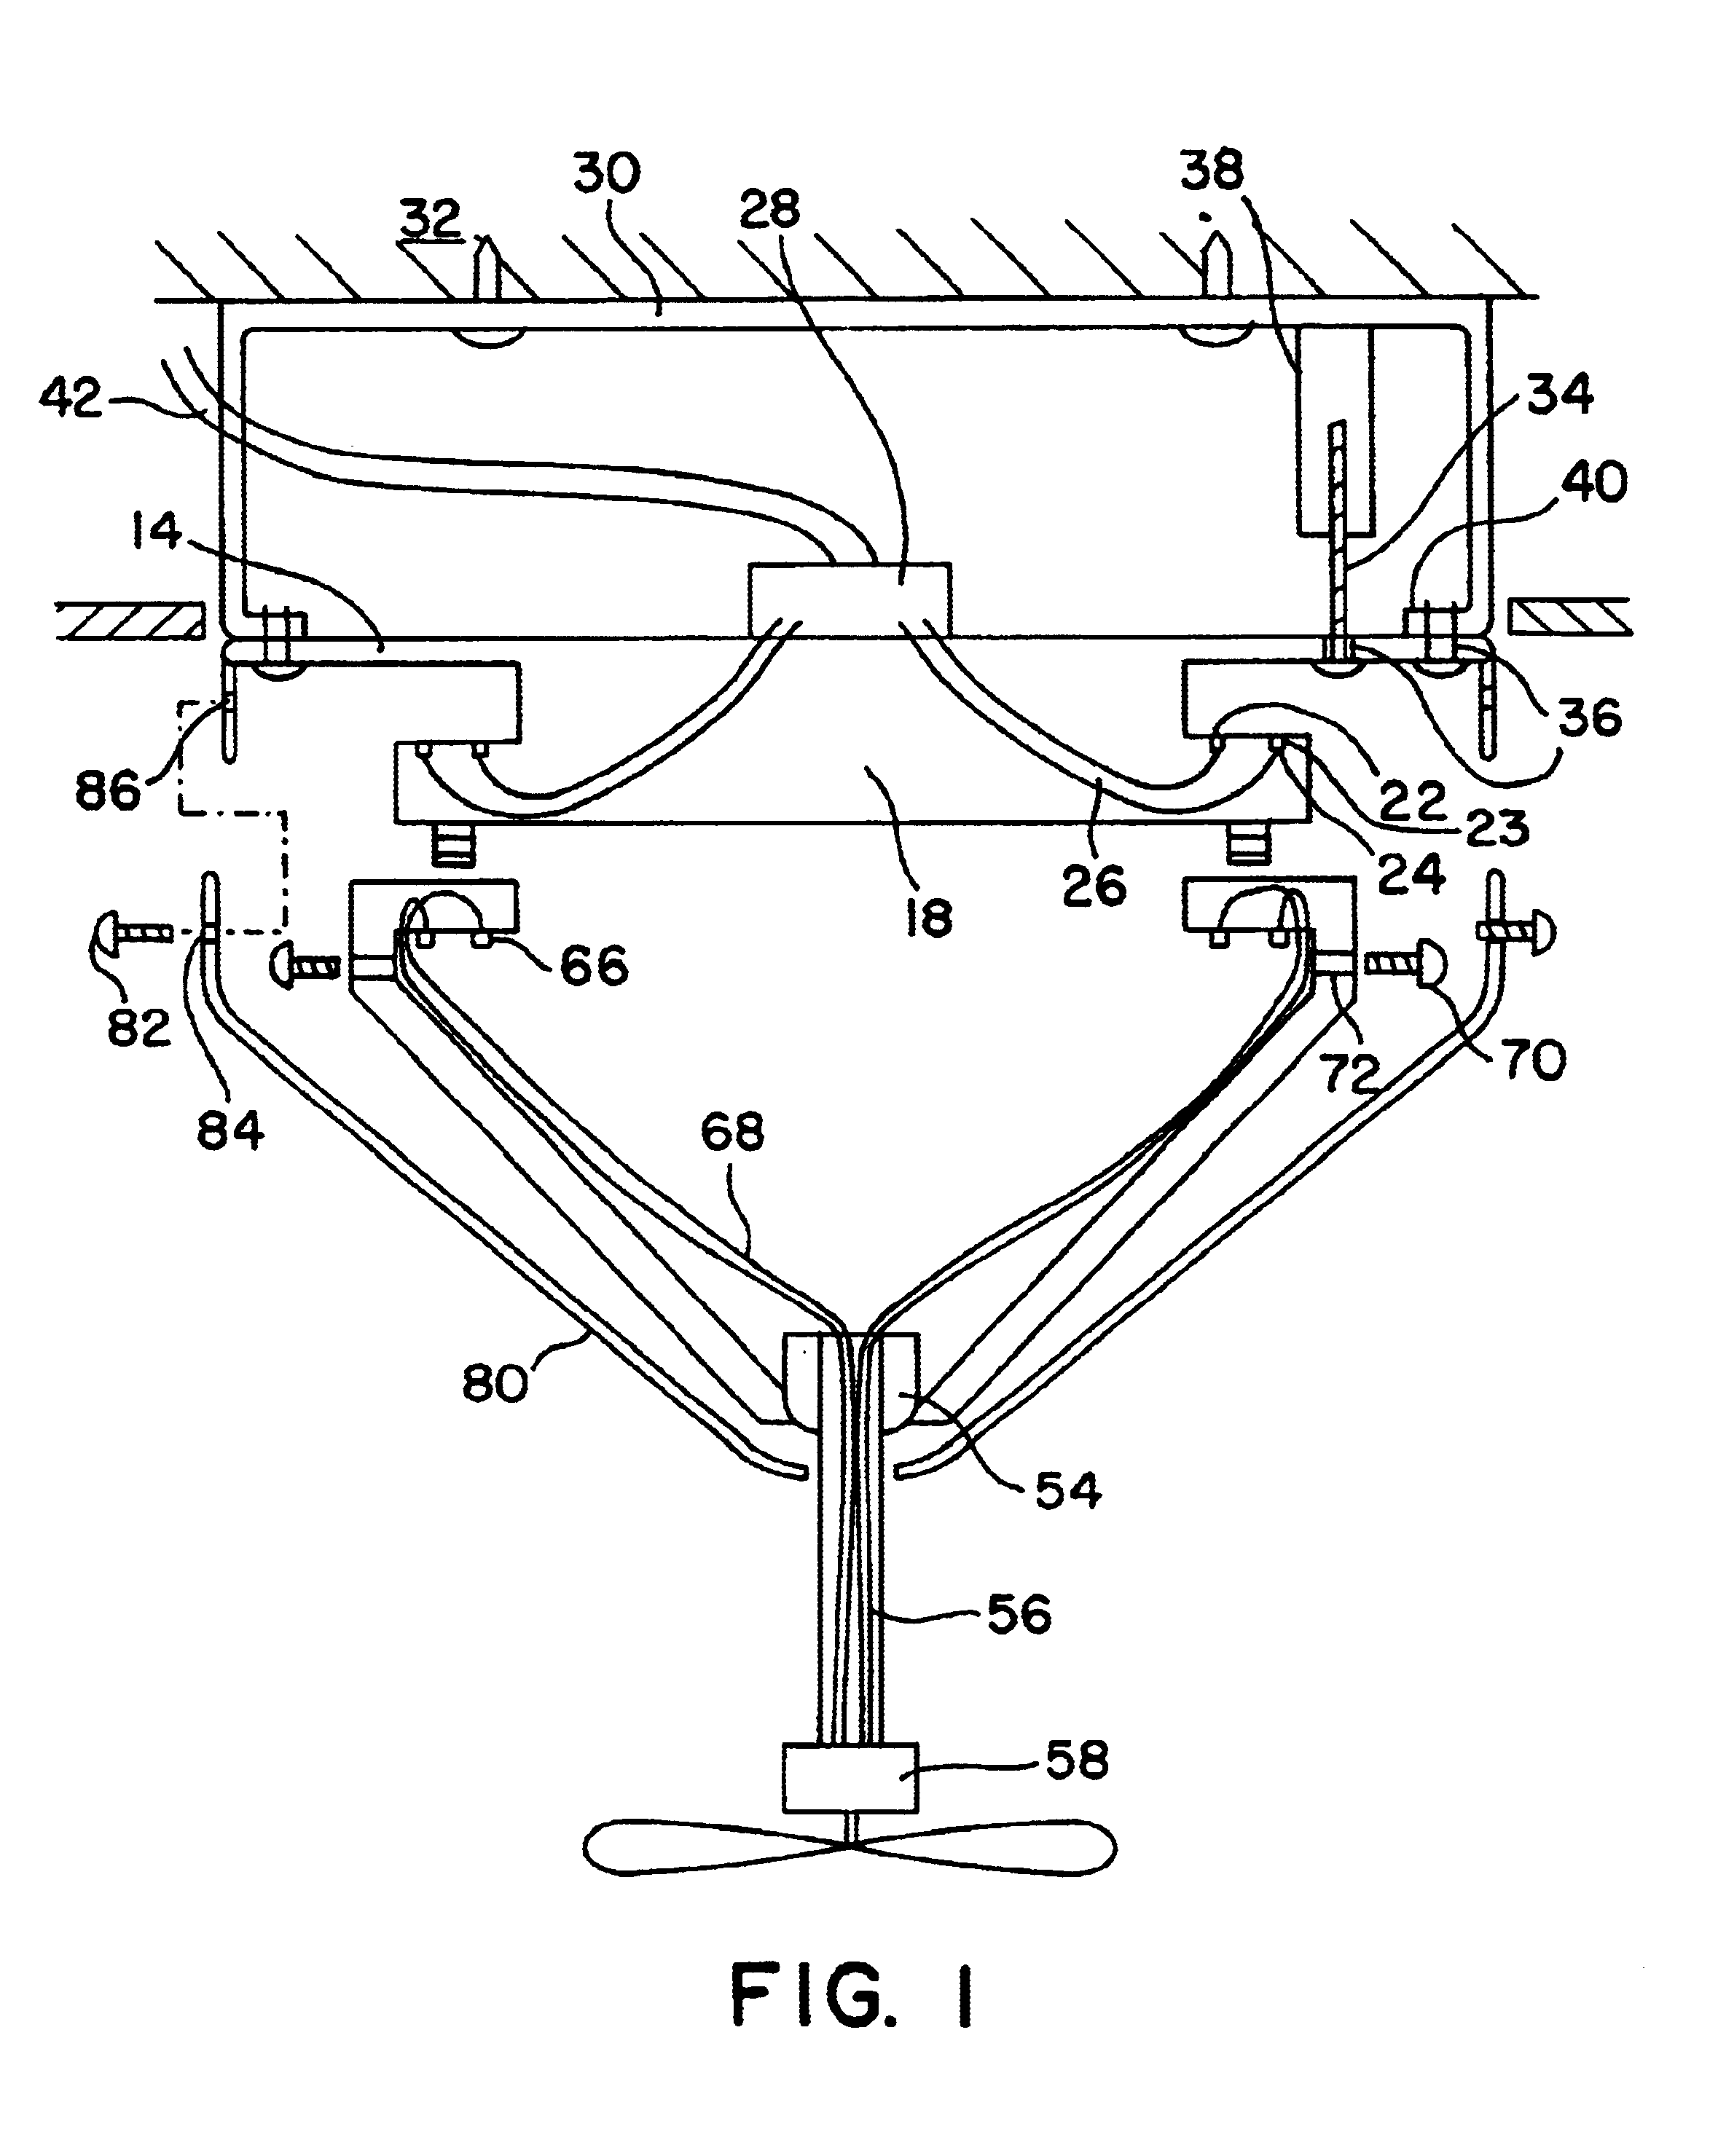 Wiring Diagram For Emerson Ceiling Fans Ls3 Harness Schematic Encon Fan 4 Source Patent Us6634901 Quick Connect Device